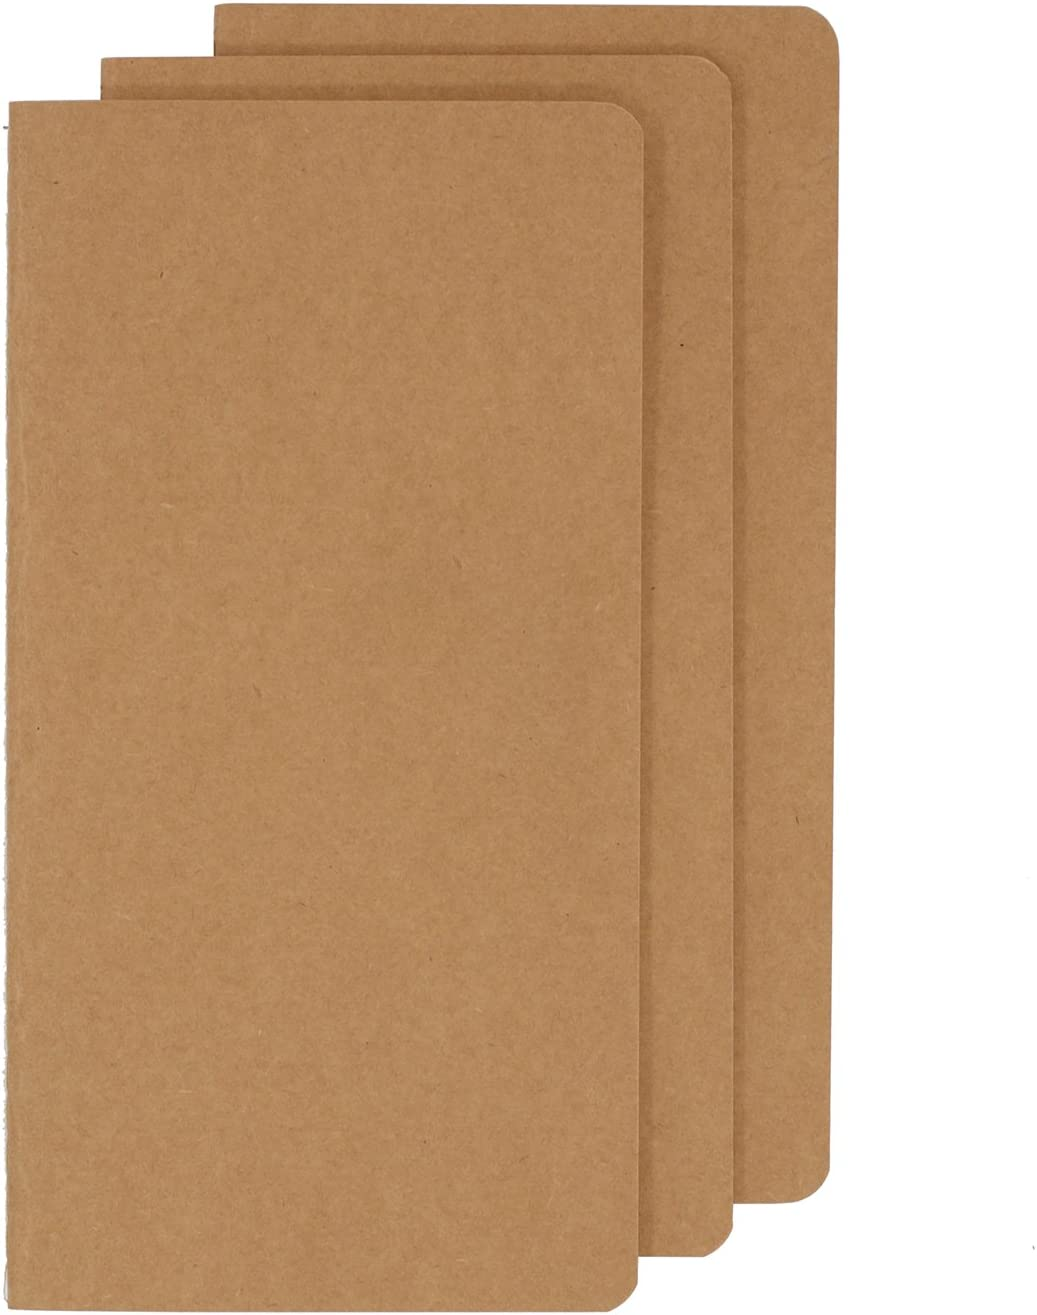 Unlined Travel Journal Set With 3 Notebook Journals for Travelers - Kraft Brown Soft Cover - H5 Size - 100gsm - 210 mm x 112 mm - 100gsm 60 Pages/ 30 Sheets